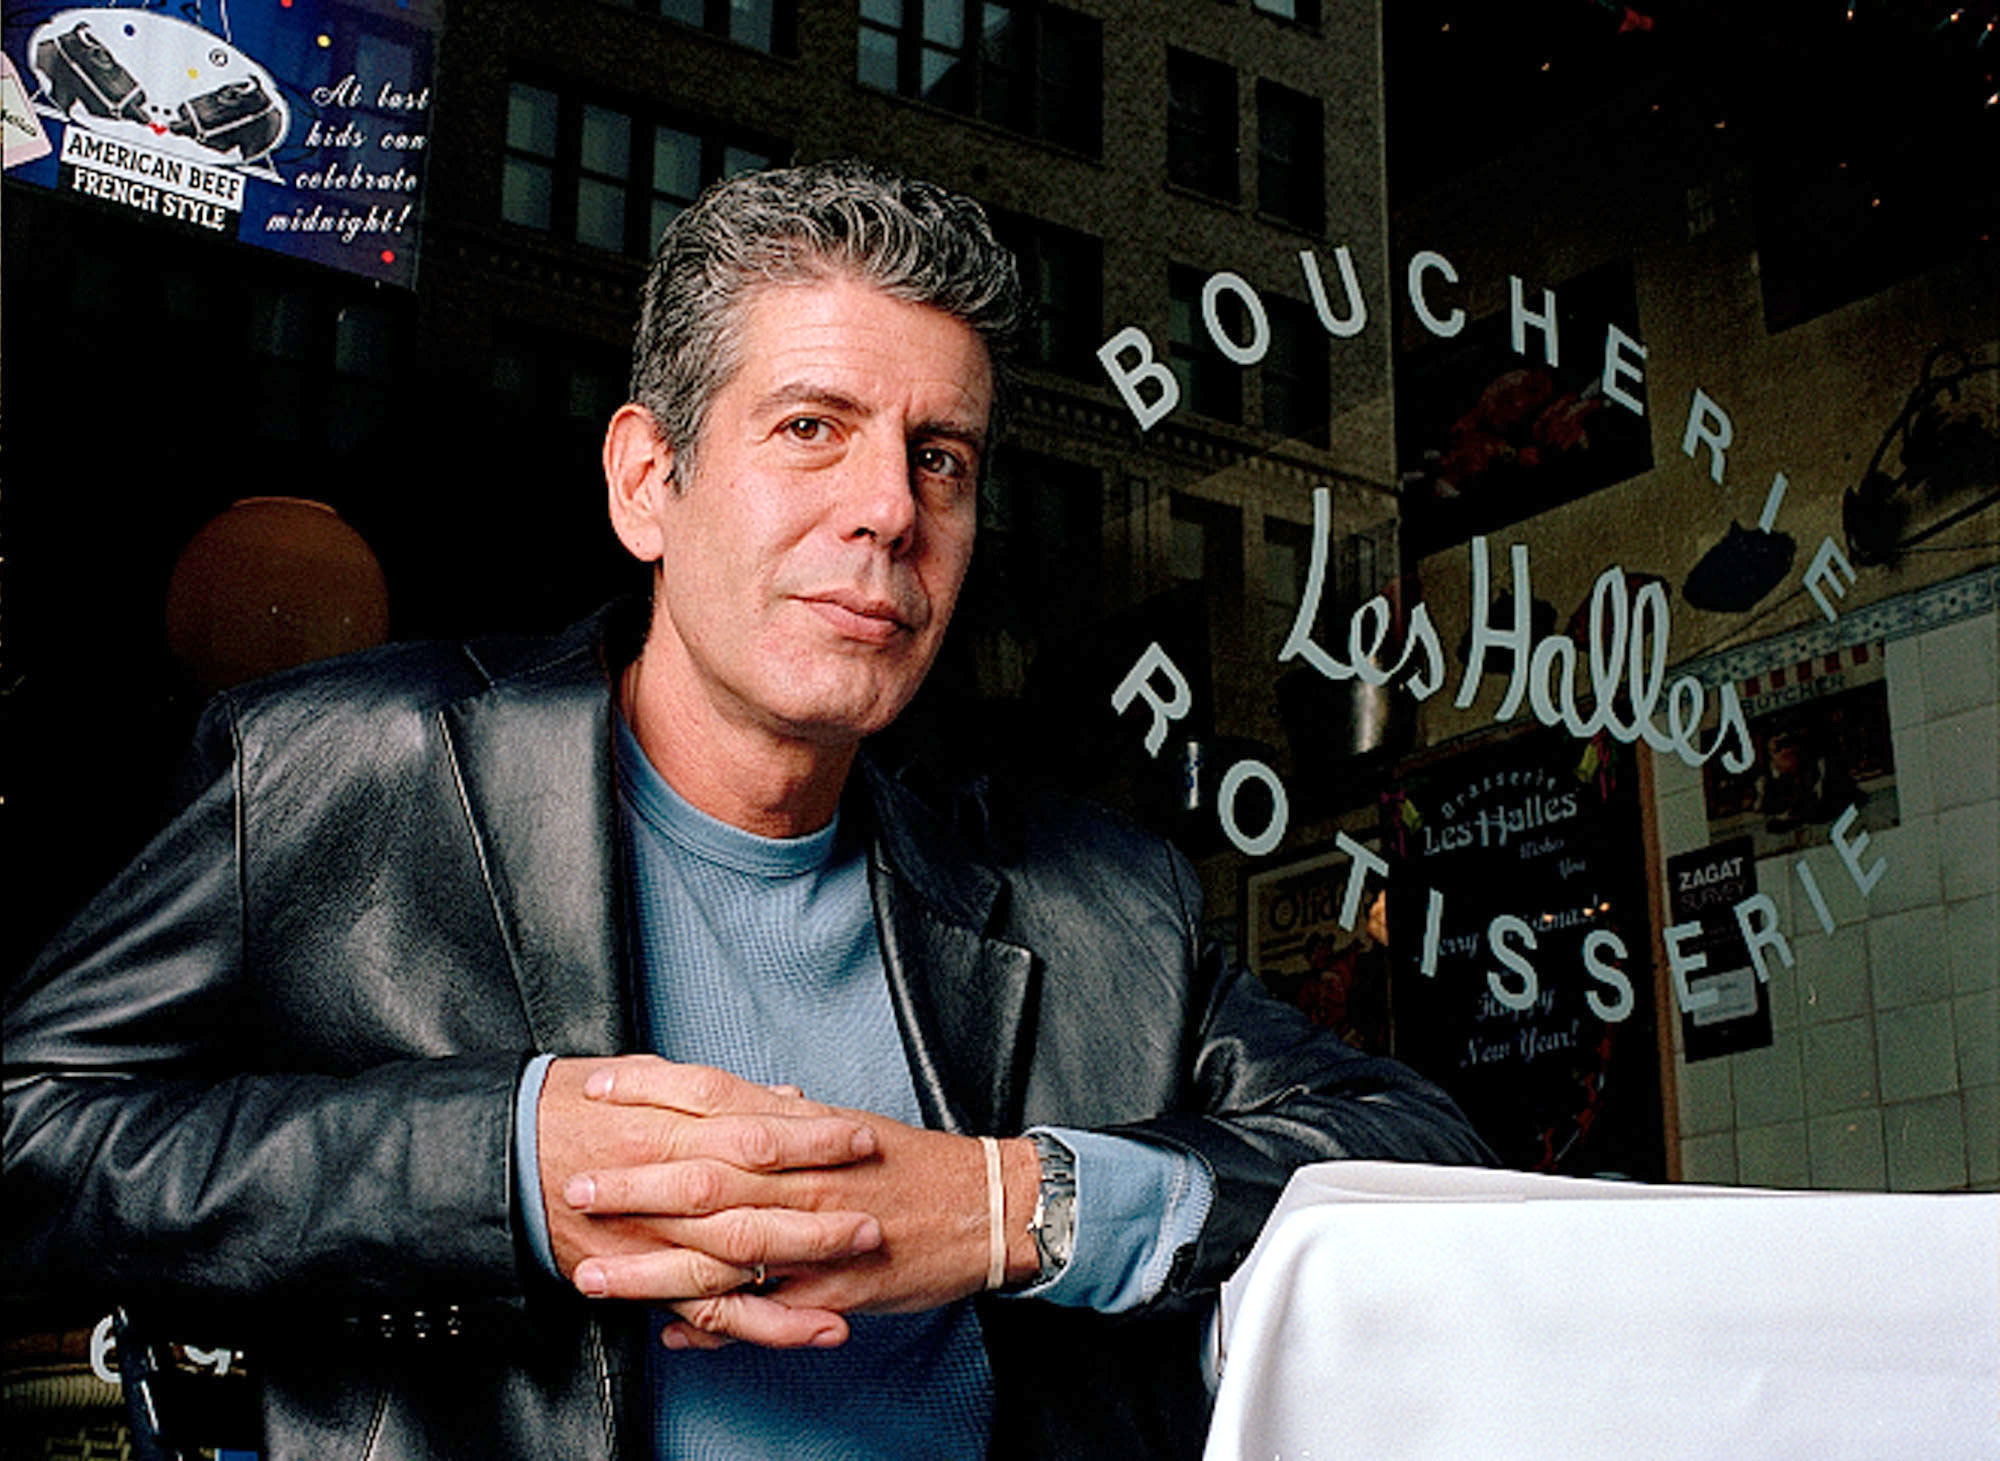 FIVEQS ANTHONY BOURDAIN, NEW YORK, USA